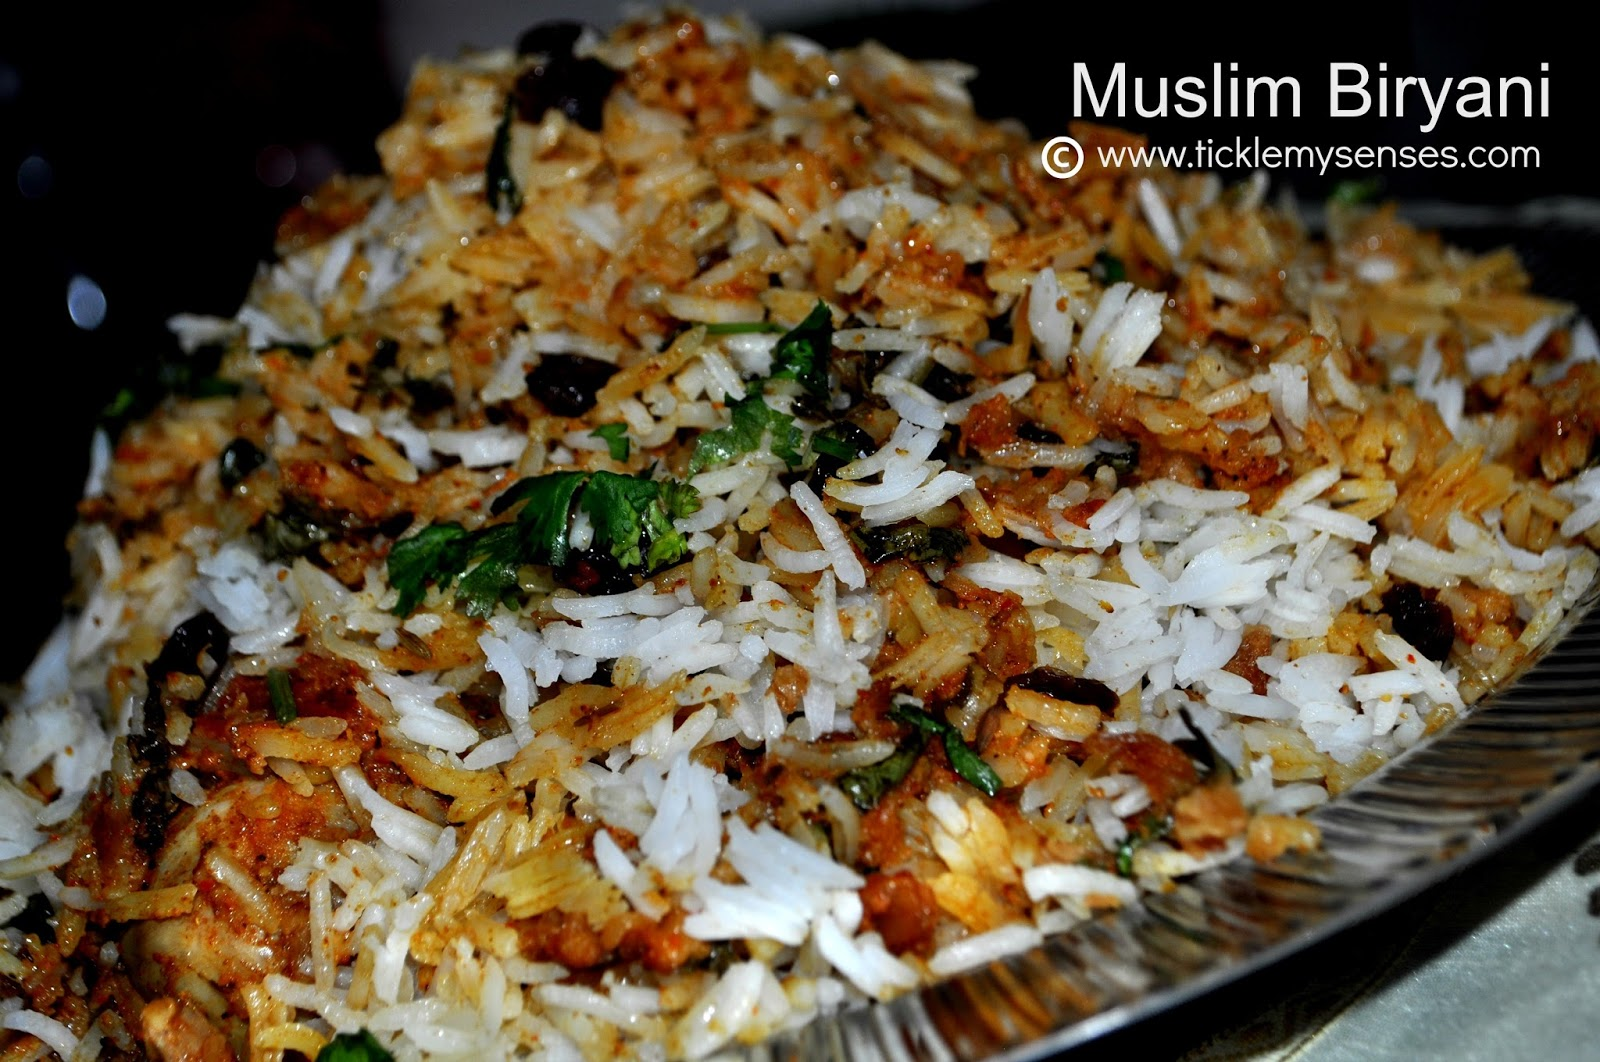 Tickle my senses eid mubarak and a delicious muslim biryani recipe eid mubarak and a delicious muslim biryani recipe forumfinder Gallery